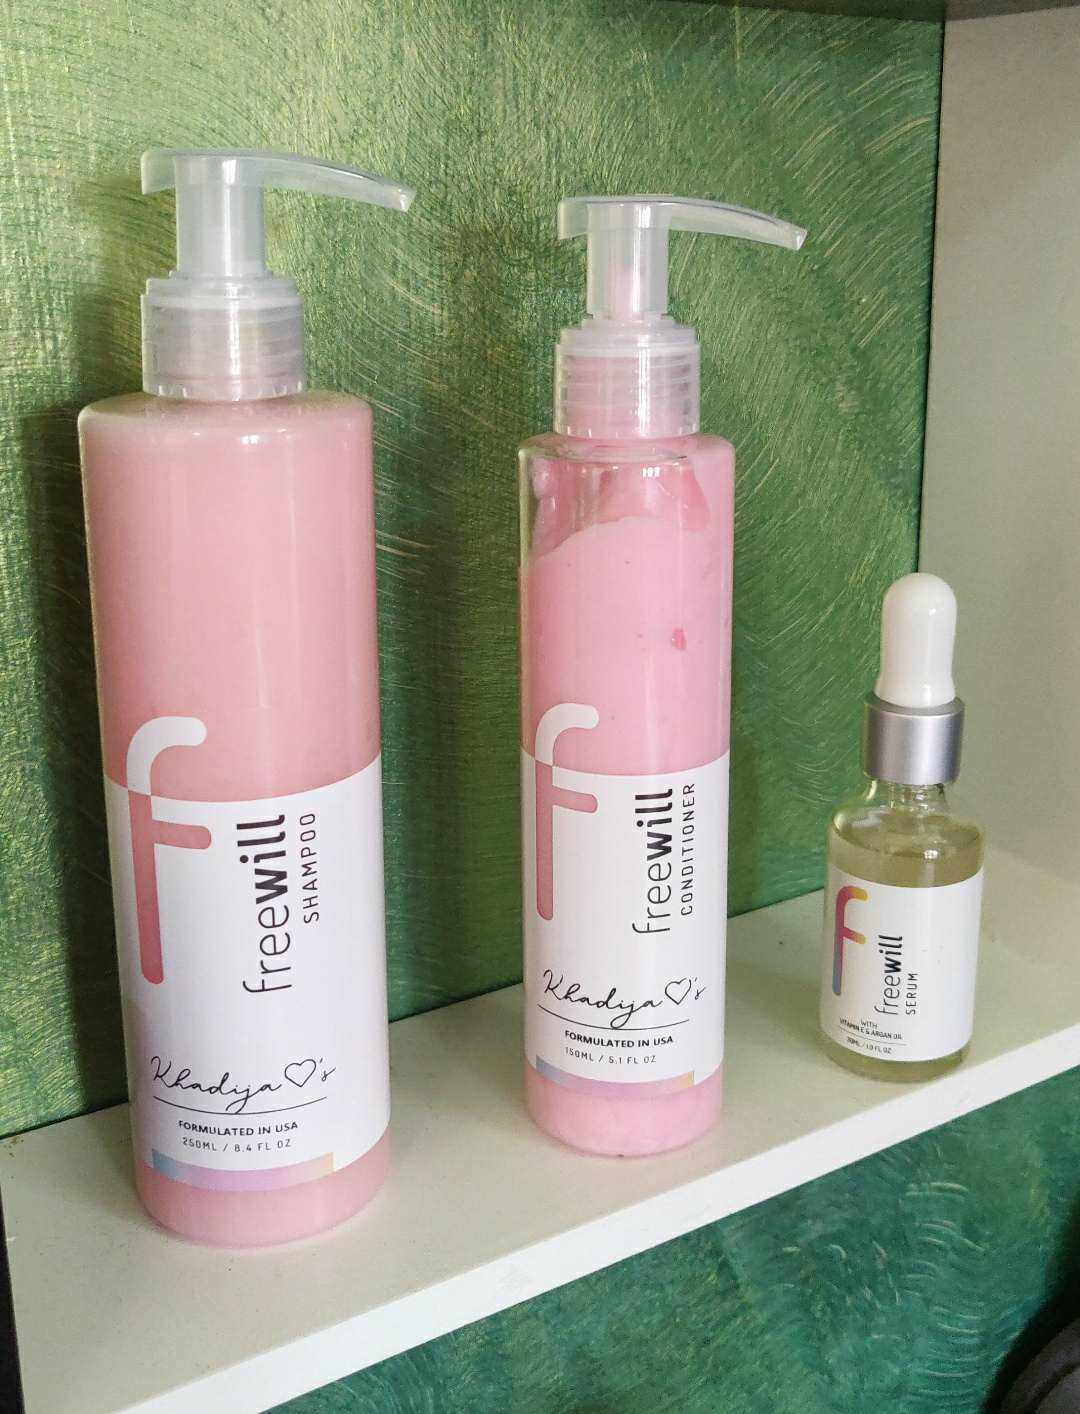 Freewill hair care kit review, frewwill shampoo conditioner